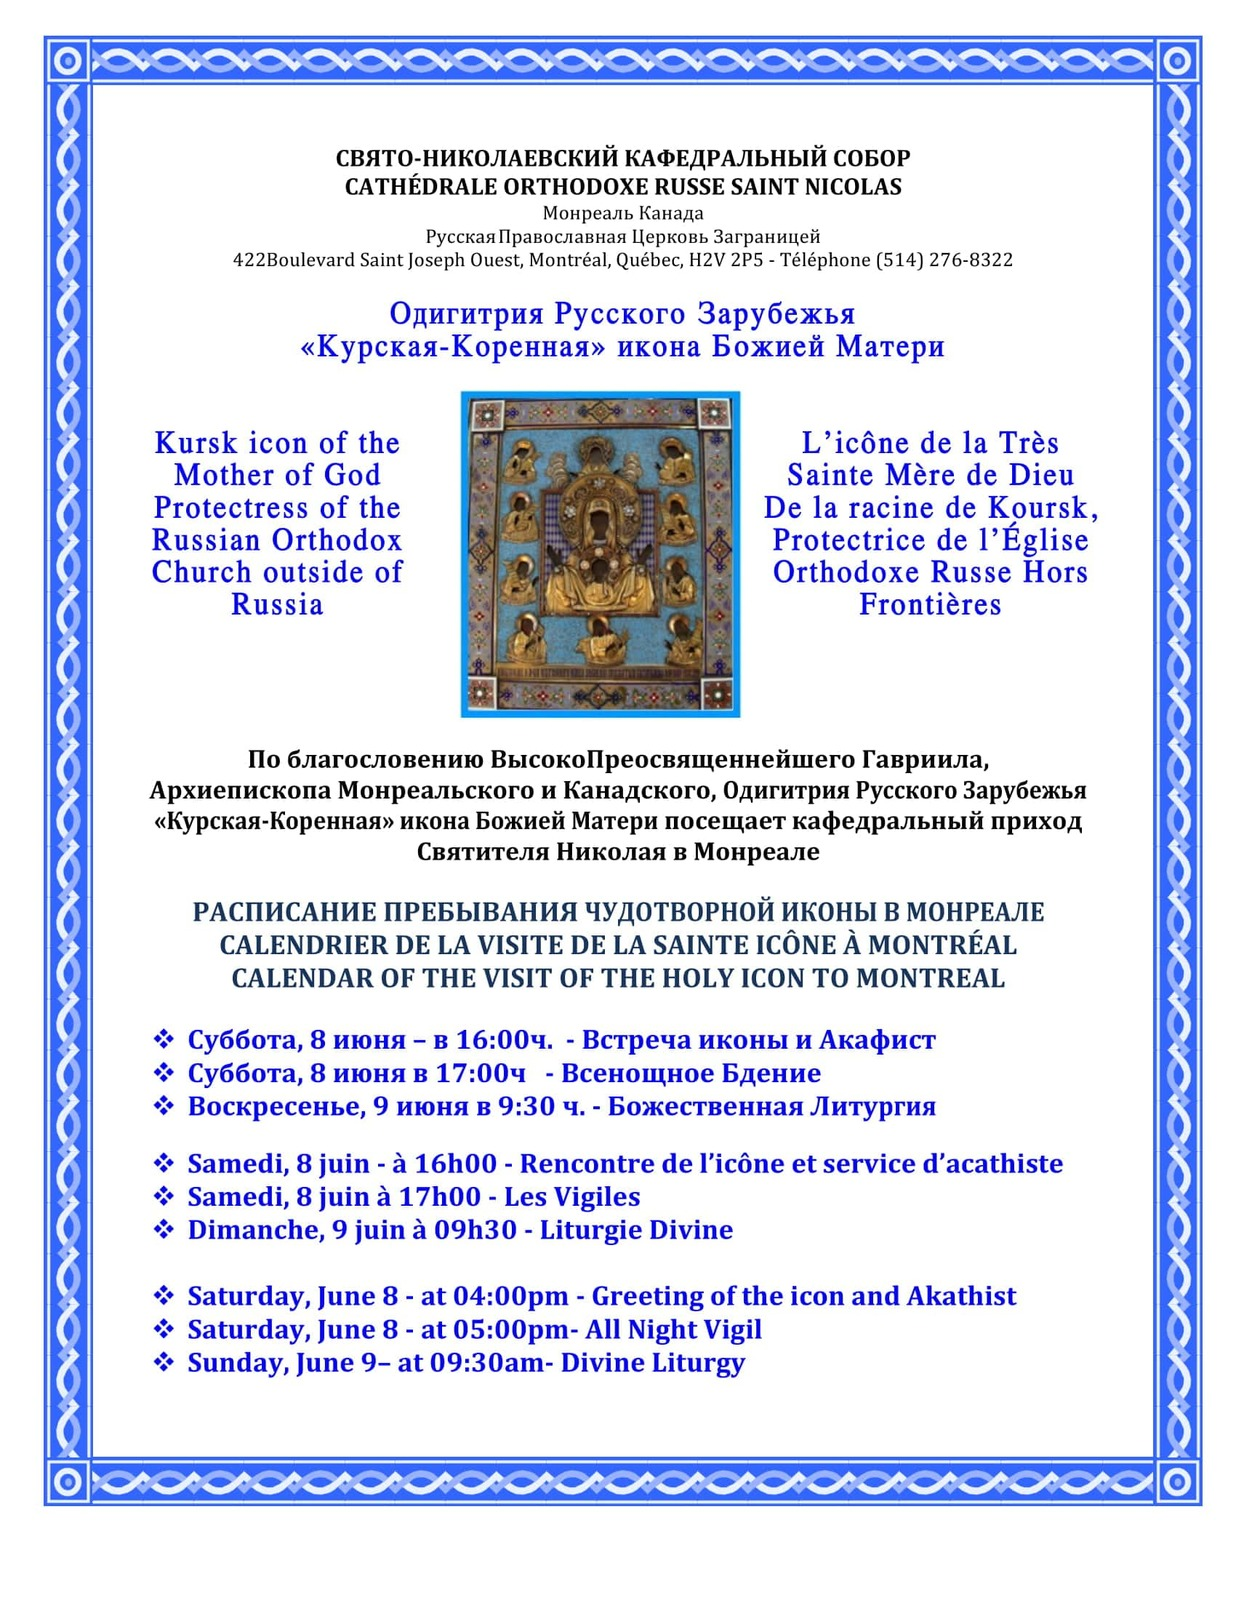 St  Nicholas Russian Orthodox Cathedral - Photo & Event